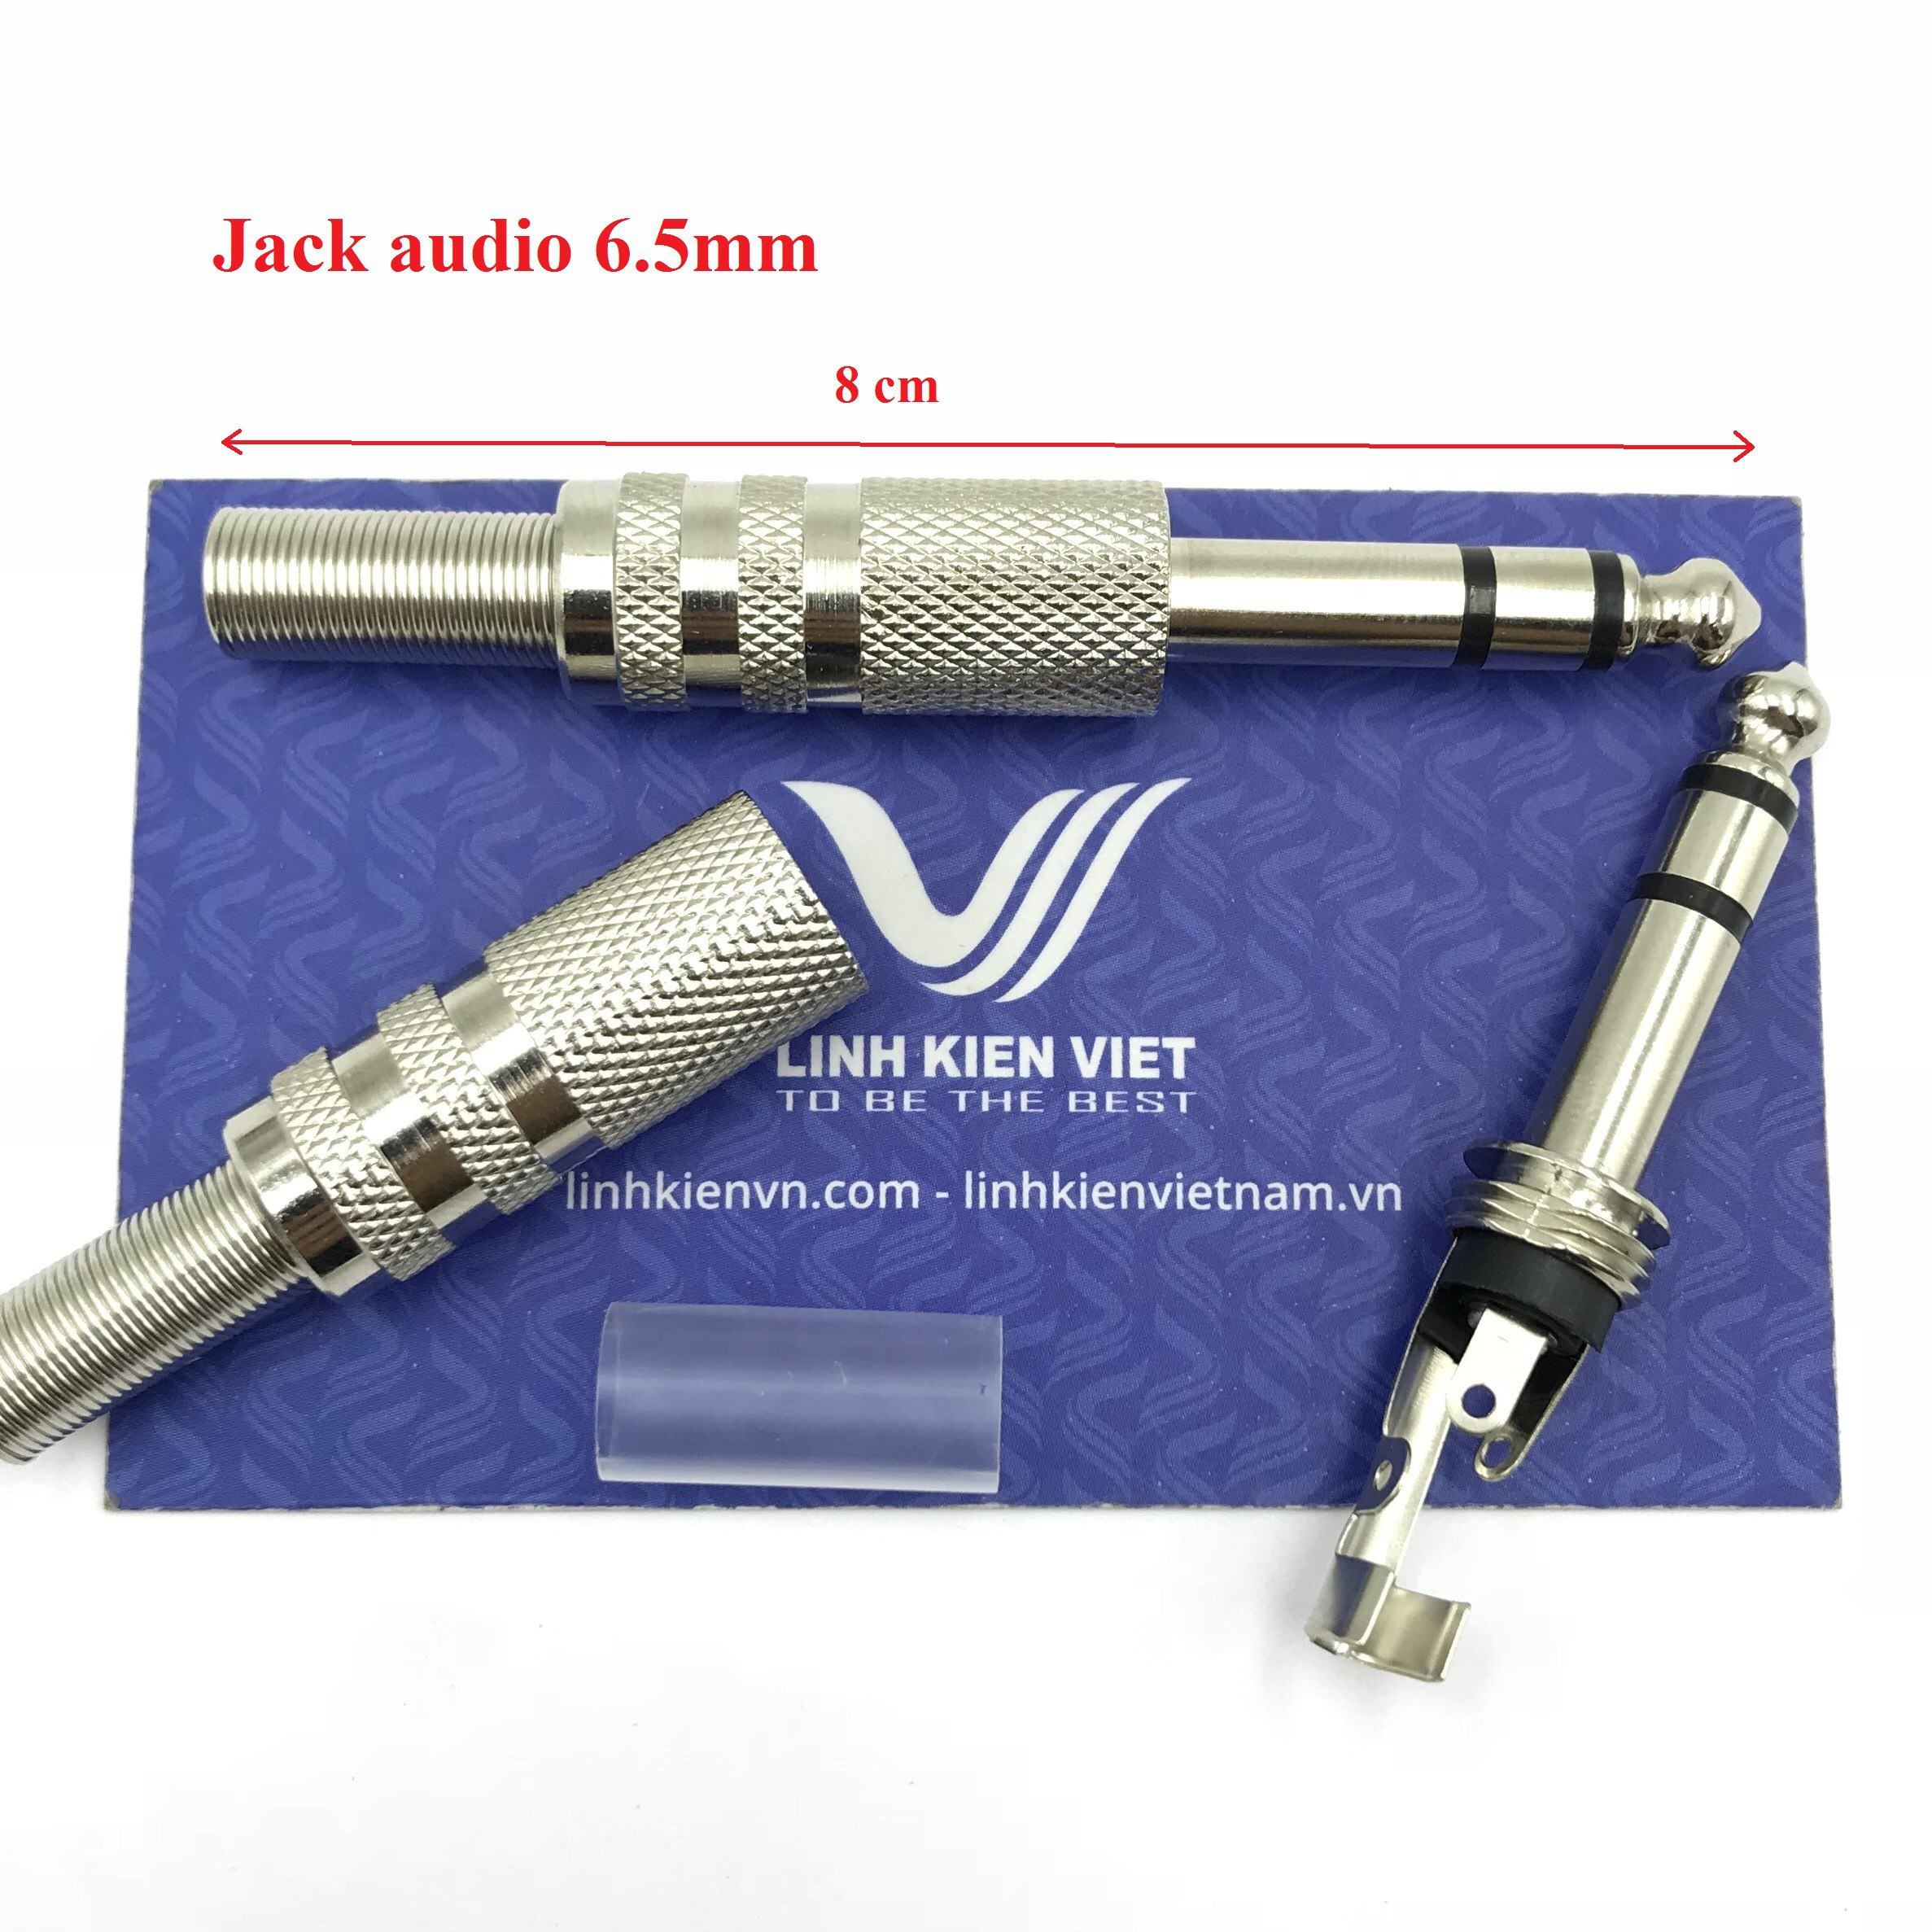 Jack Audio 6.5mm 3 chân - D8H19